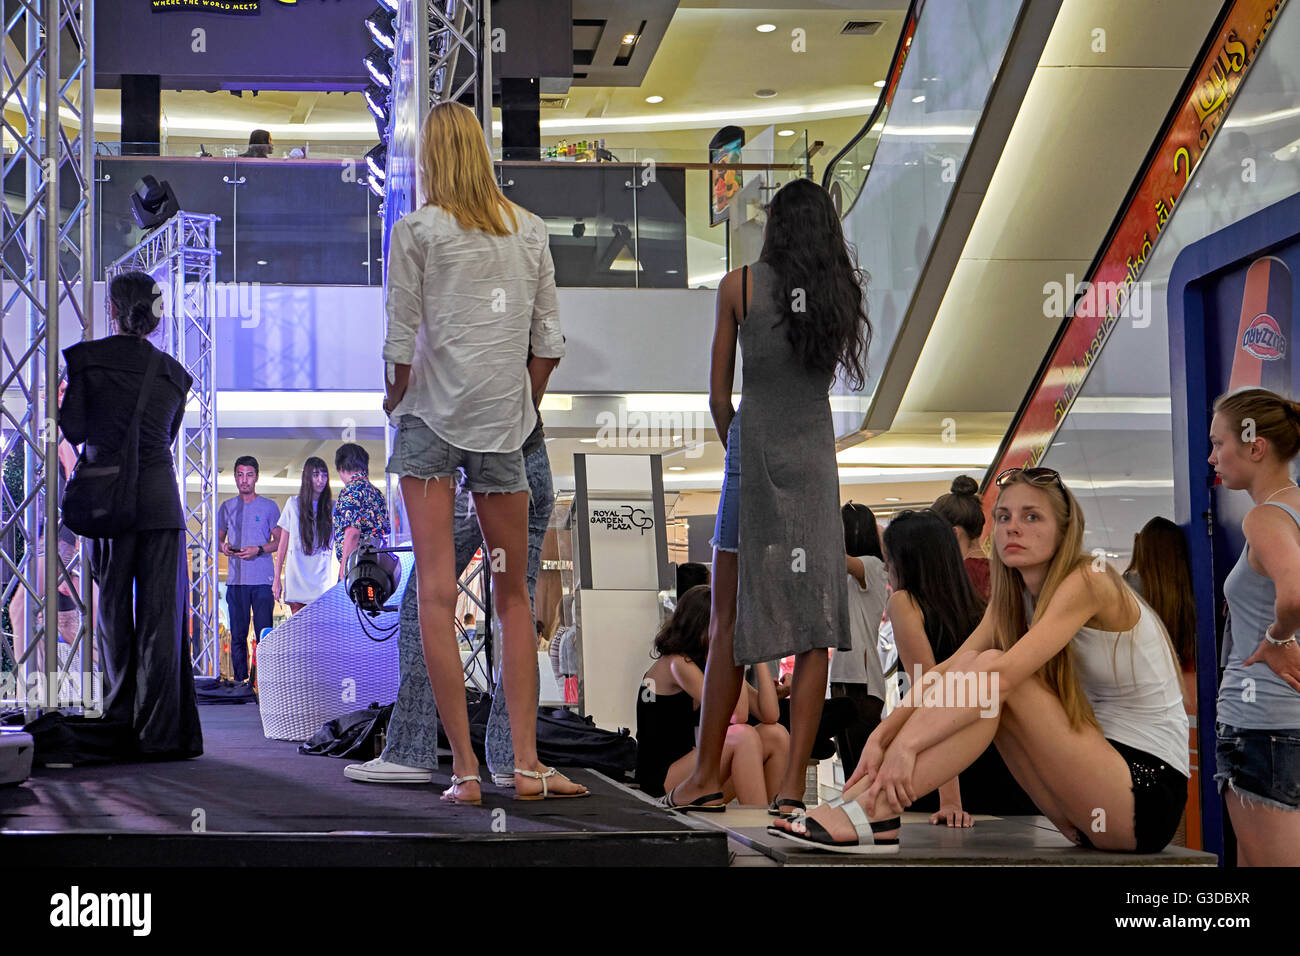 Female models backstage at a fashion show practice run. - Stock Image